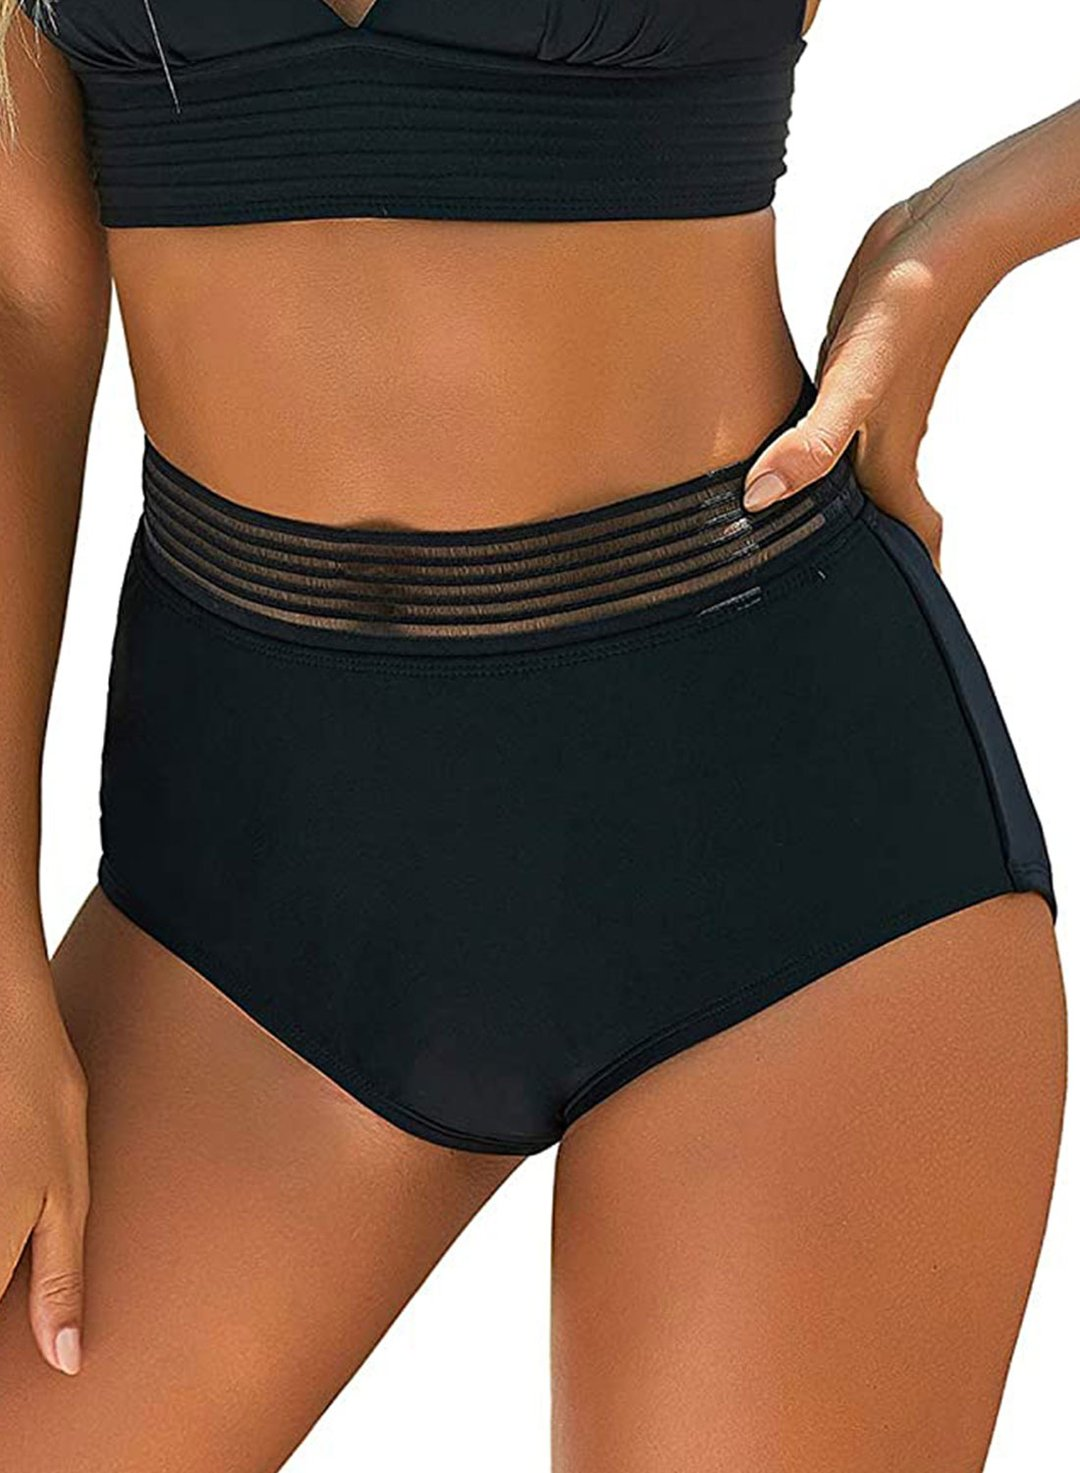 Black Women's Swim Bottoms High Waisted Ruched Bottoms LC472100-2